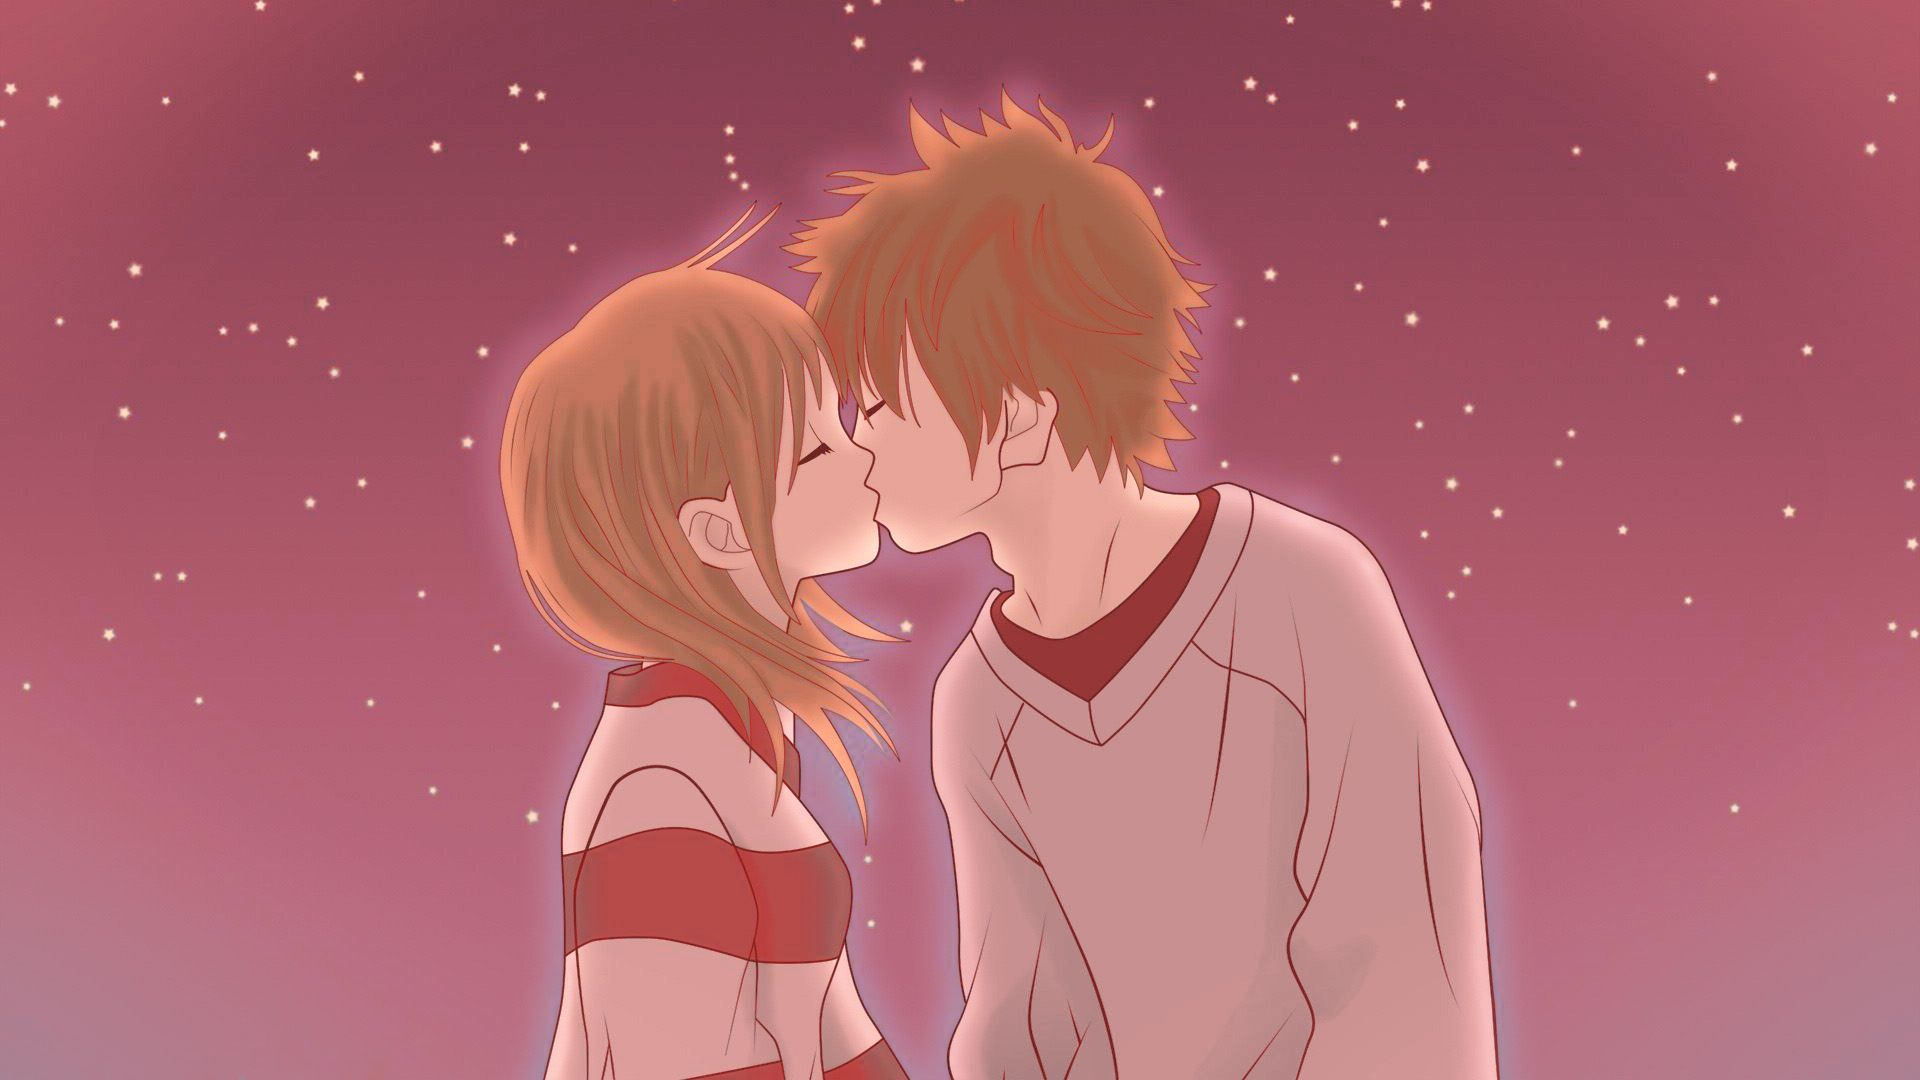 Cute Anime Couple Wallpapers For Desktop